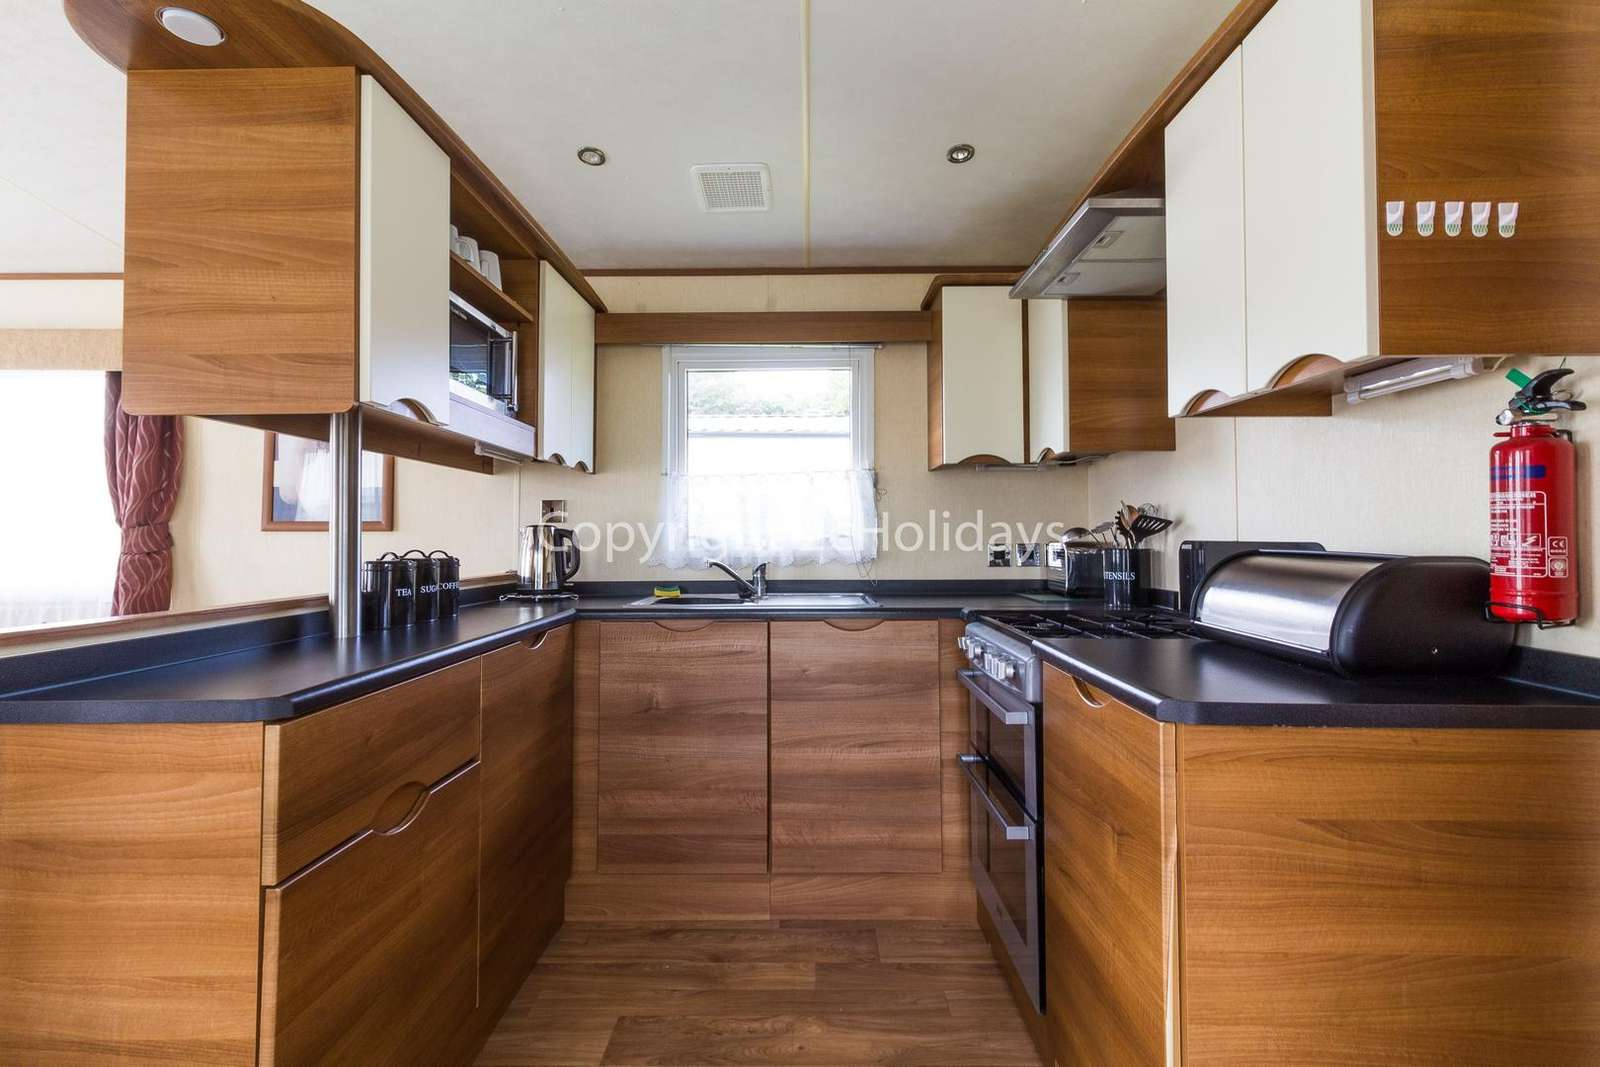 Great fully equipped kitchen, perfect for self-catering holidays!